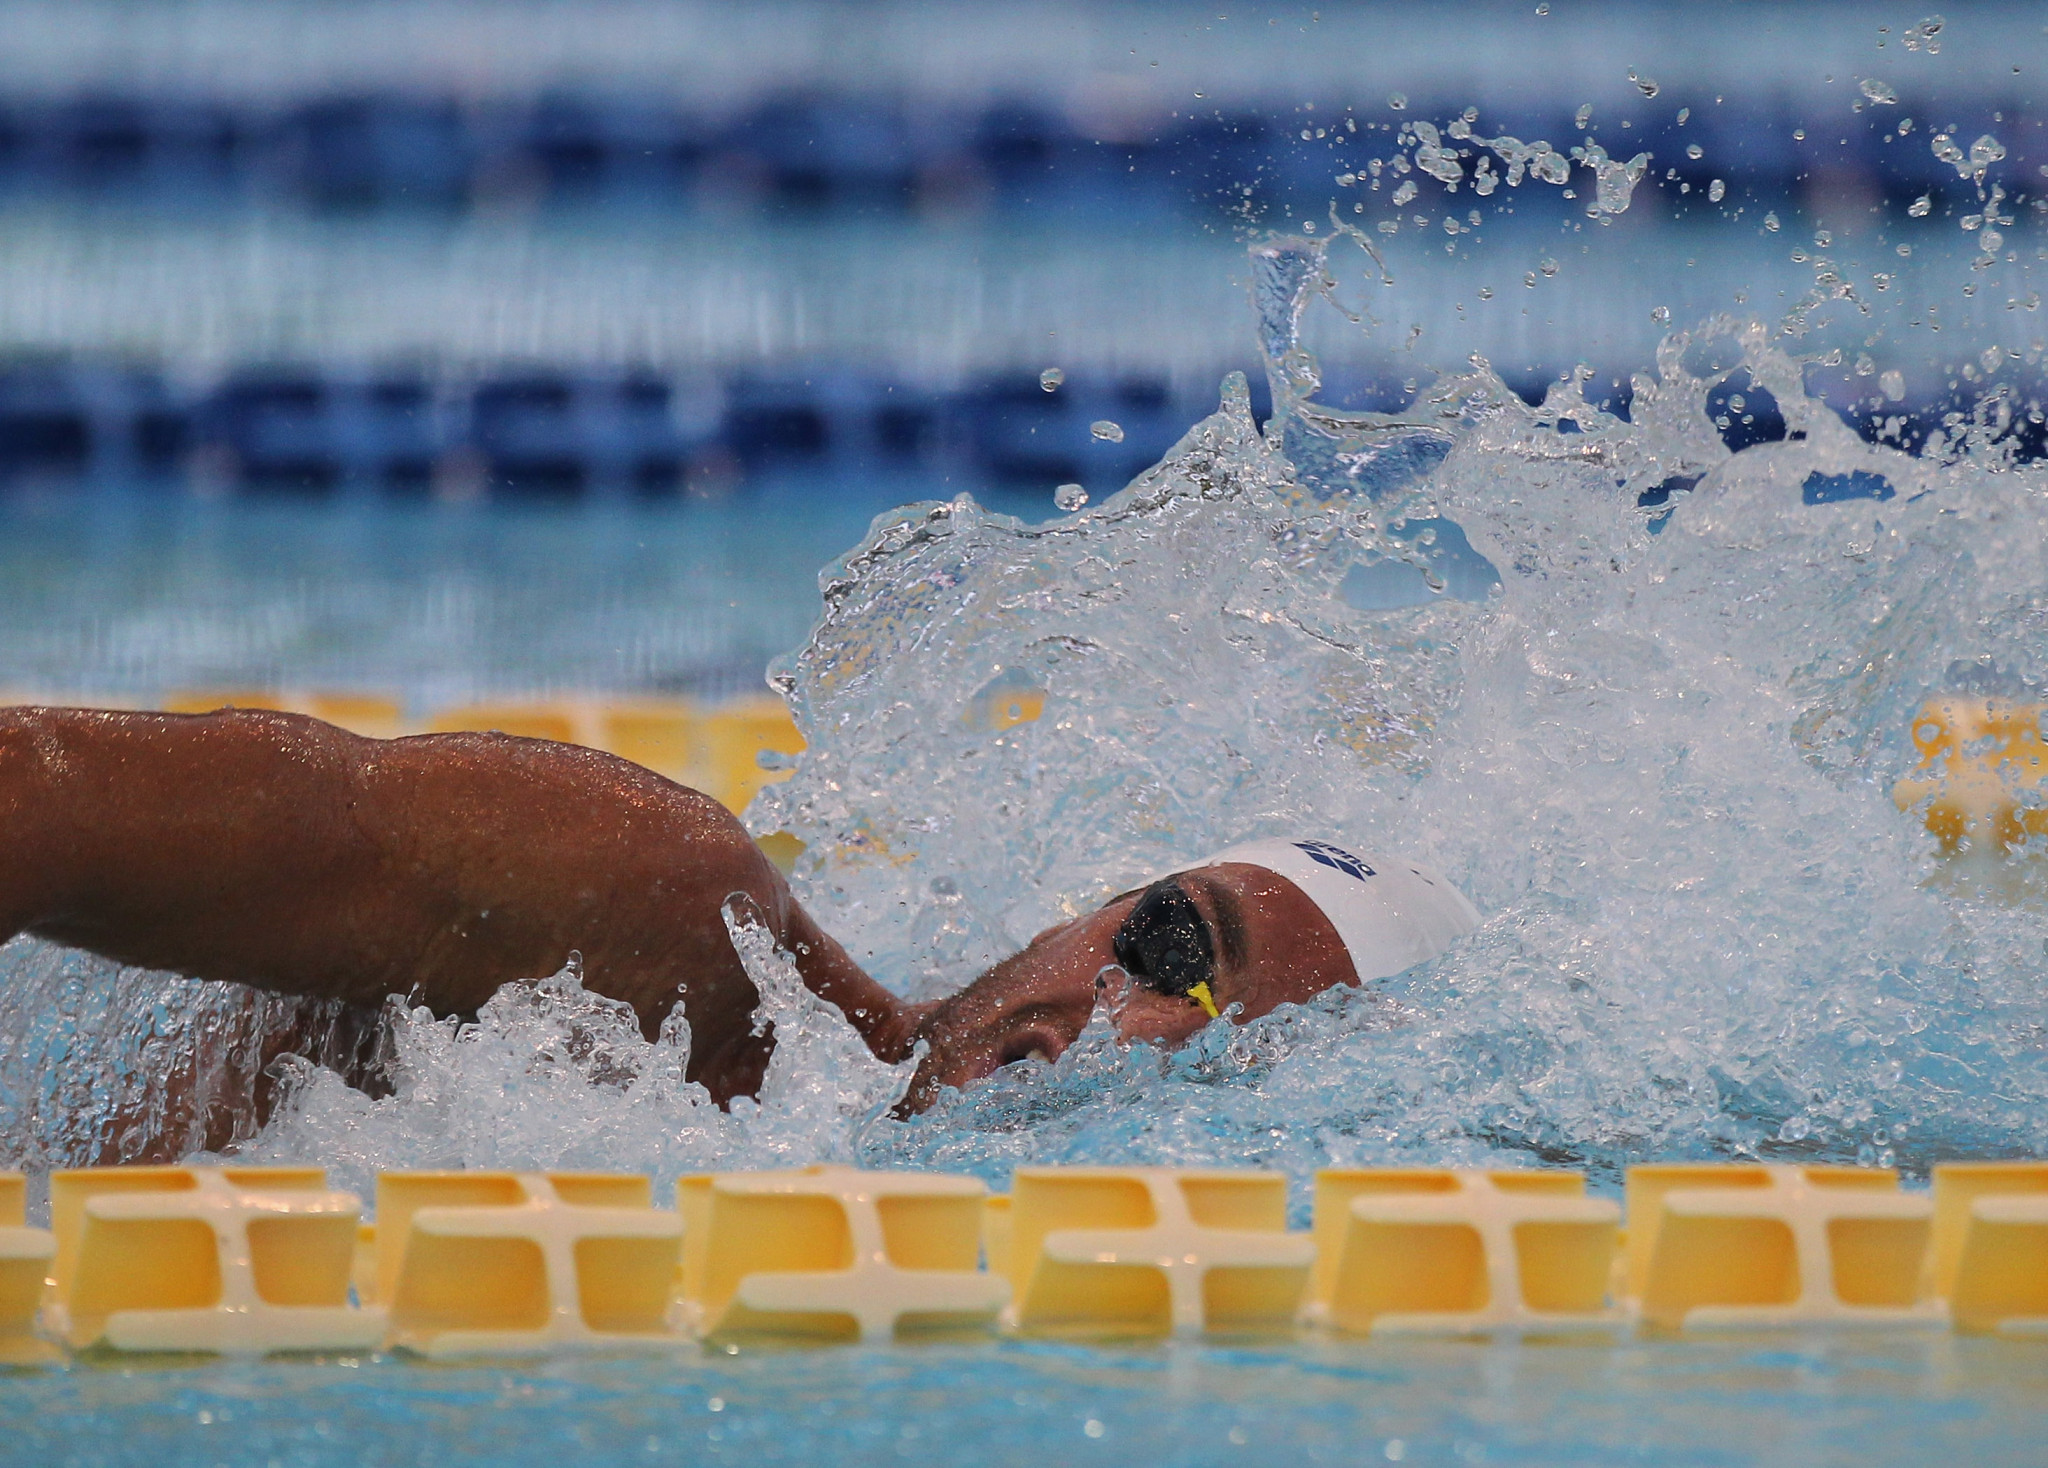 Italy's Gregorio Paltrinieri is one of the leading names set to compete at the 2018 European Championships ©Getty Images